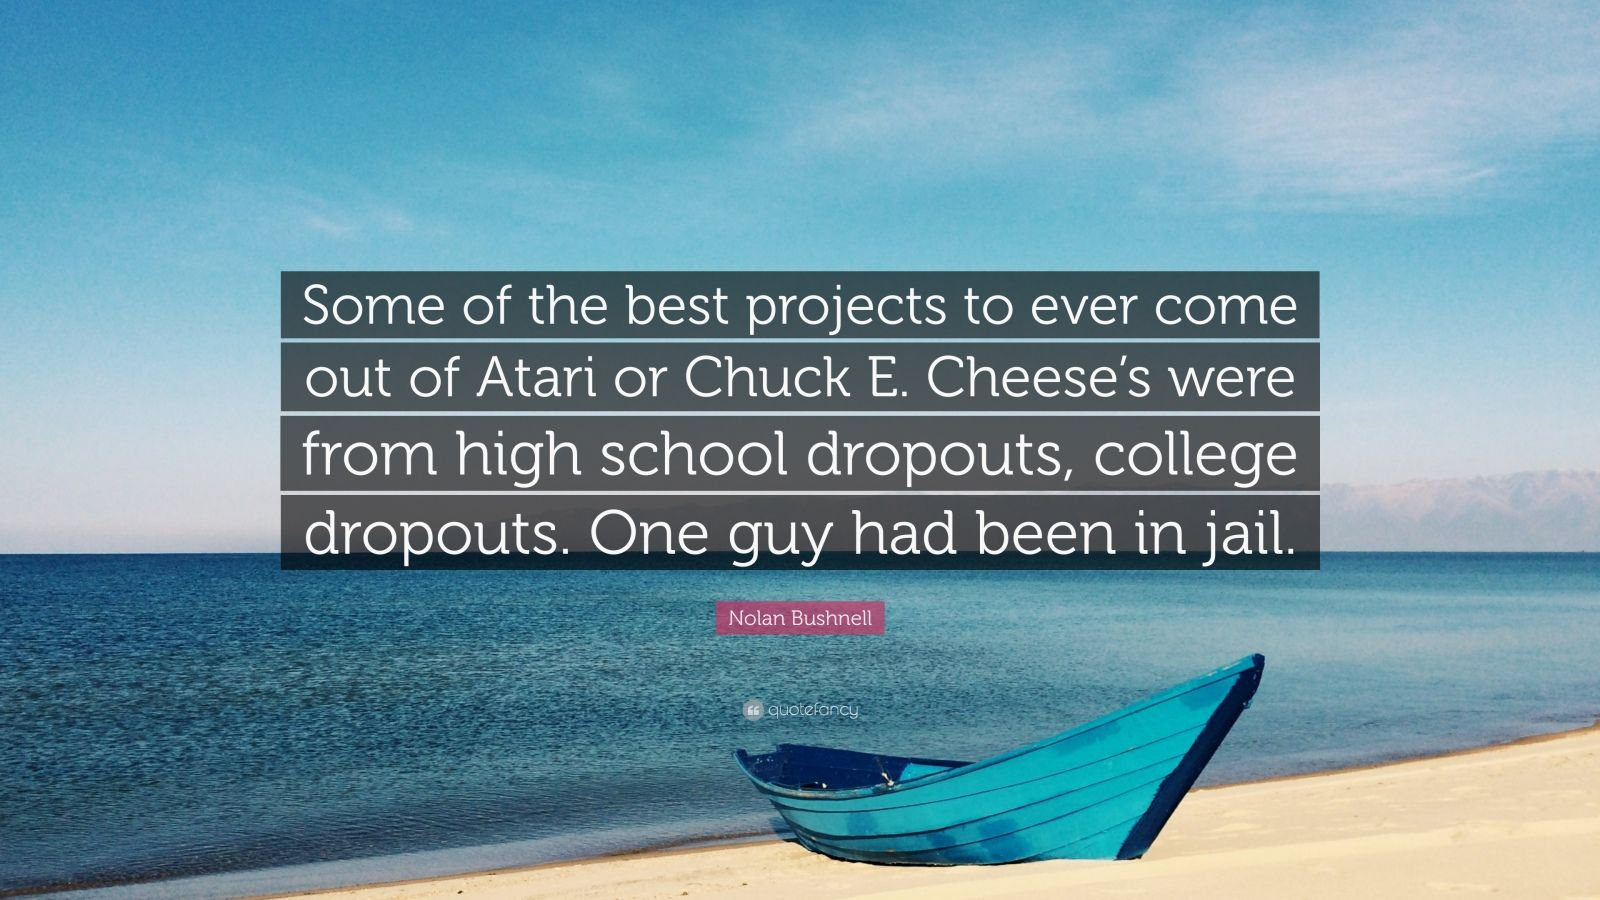 """Nolan Bushnell Quote: """"Some of the best projects to ever come out of Atari or Chuck E. Cheese's were from high school dropouts, college dropouts. One guy had been in jail."""""""